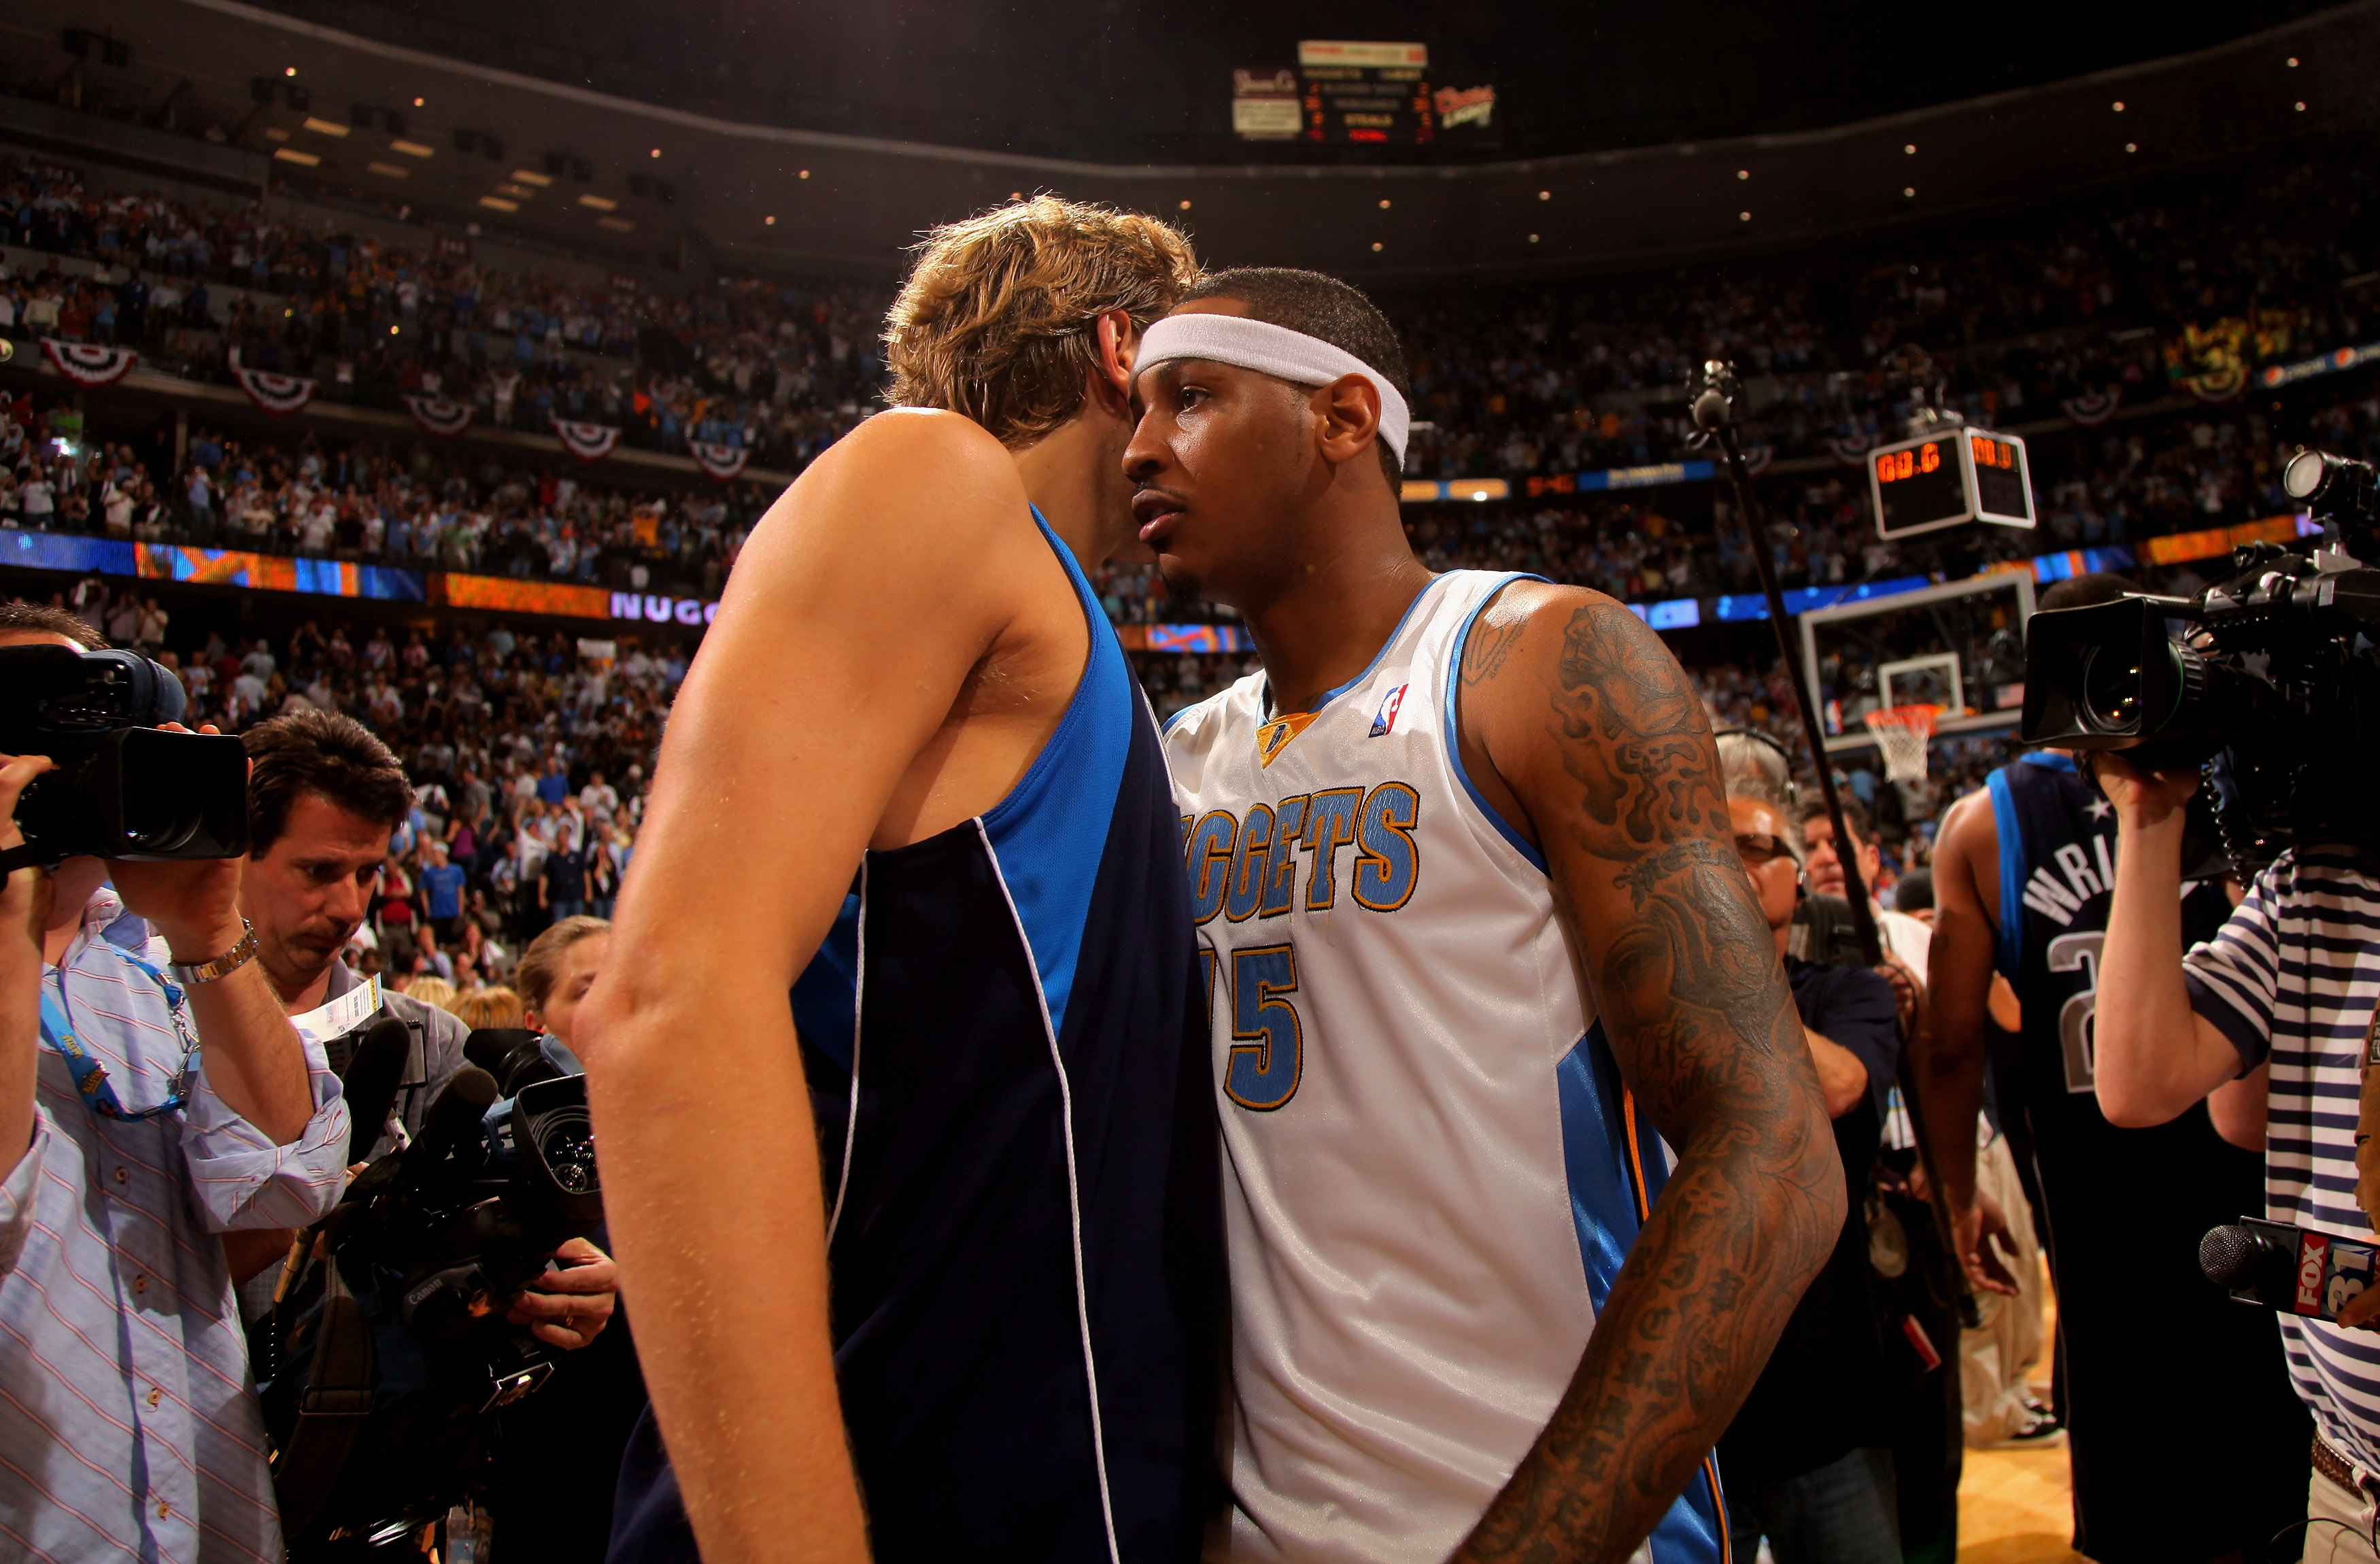 DENVER - MAY 13:  Carmelo Anthony #15 of the Denver Nuggets and Dirk Nowitzki #41 of the Dallas Mavericks exchange words on the court after Game Five of the Western Conference Semifinals during the 2009 NBA Playoffs at Pepsi Center on May 13, 2009 in Denv